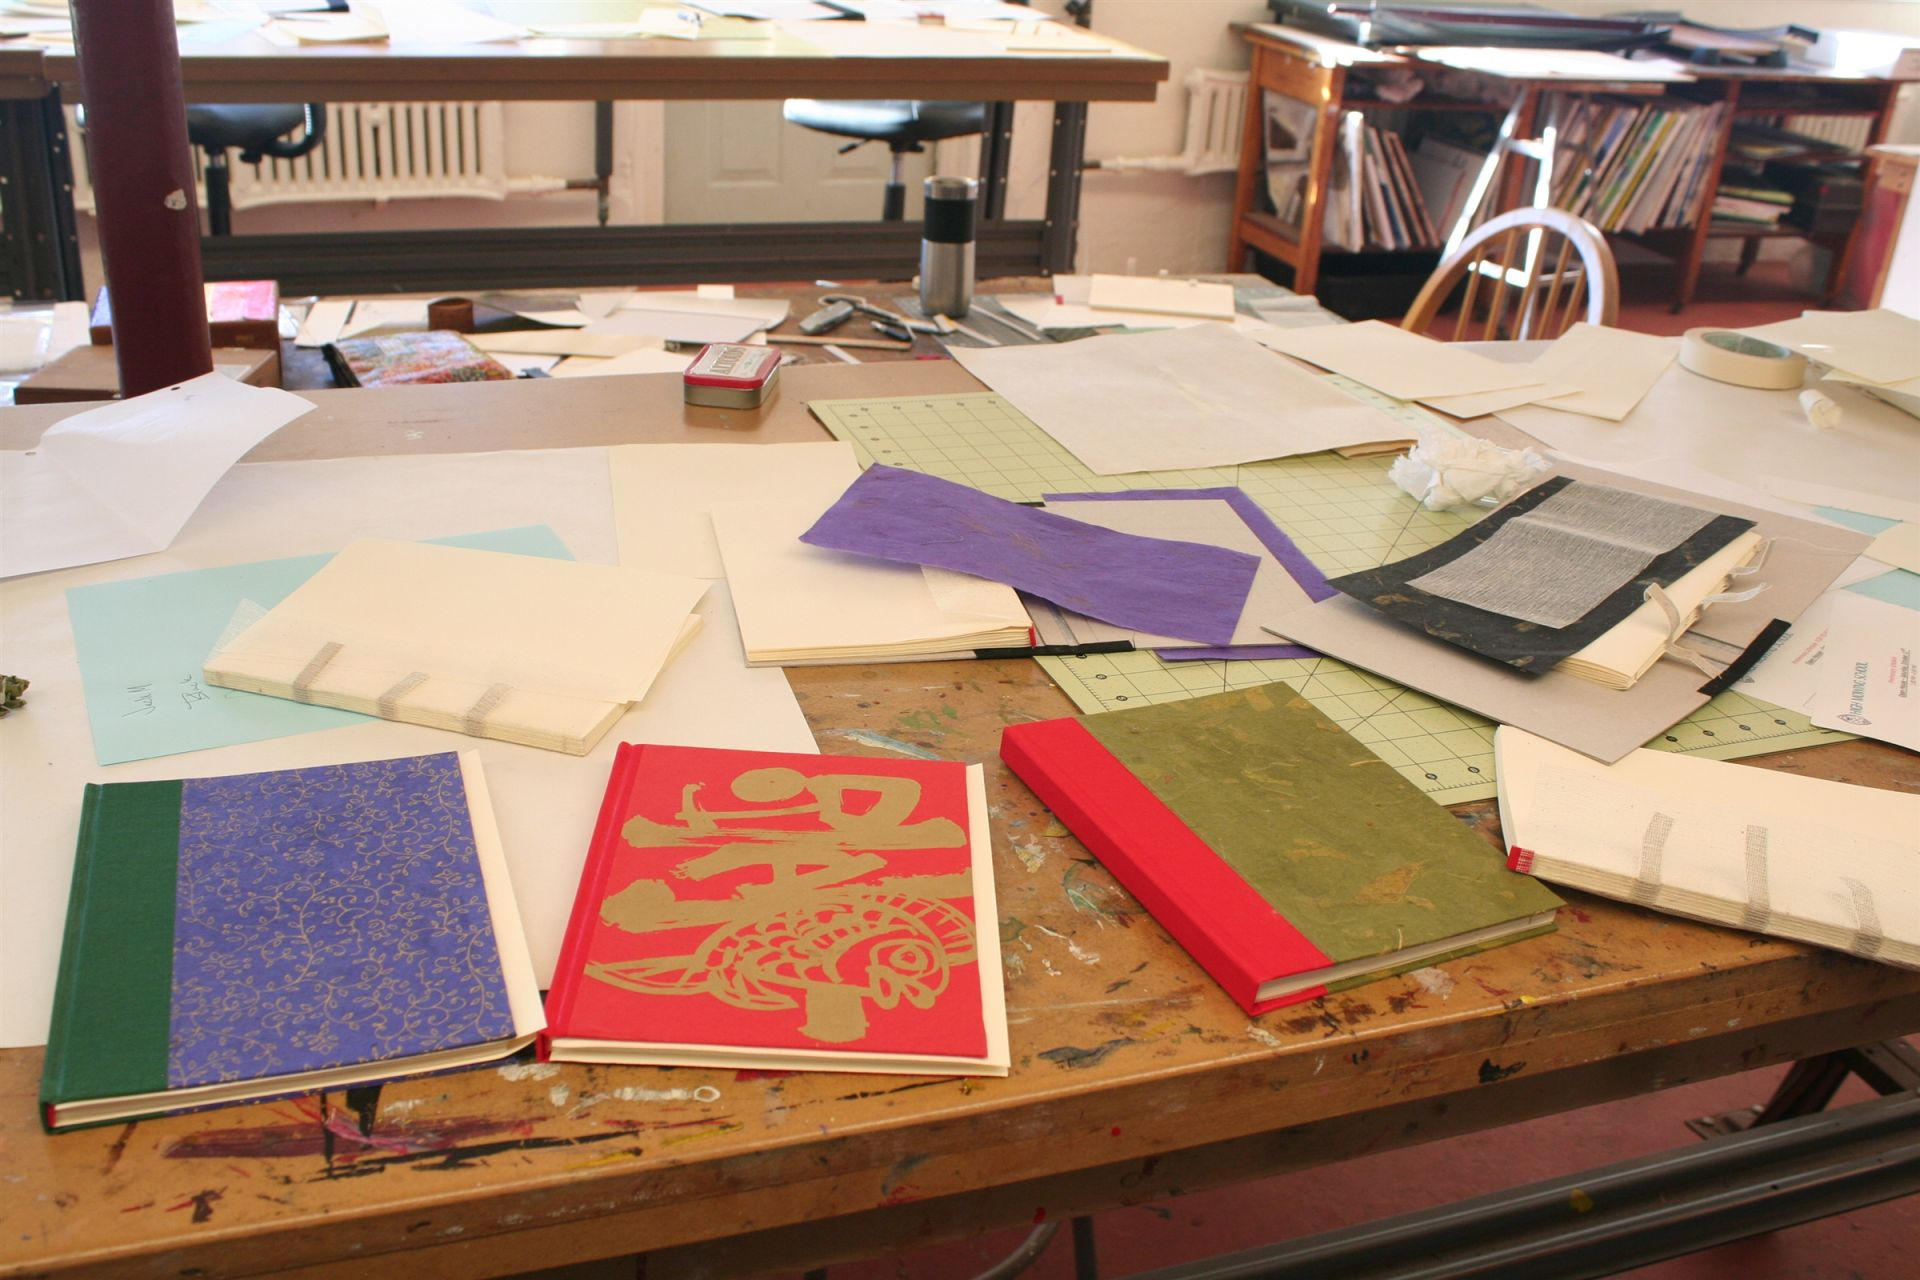 Bookbinding projects at various stages of completion